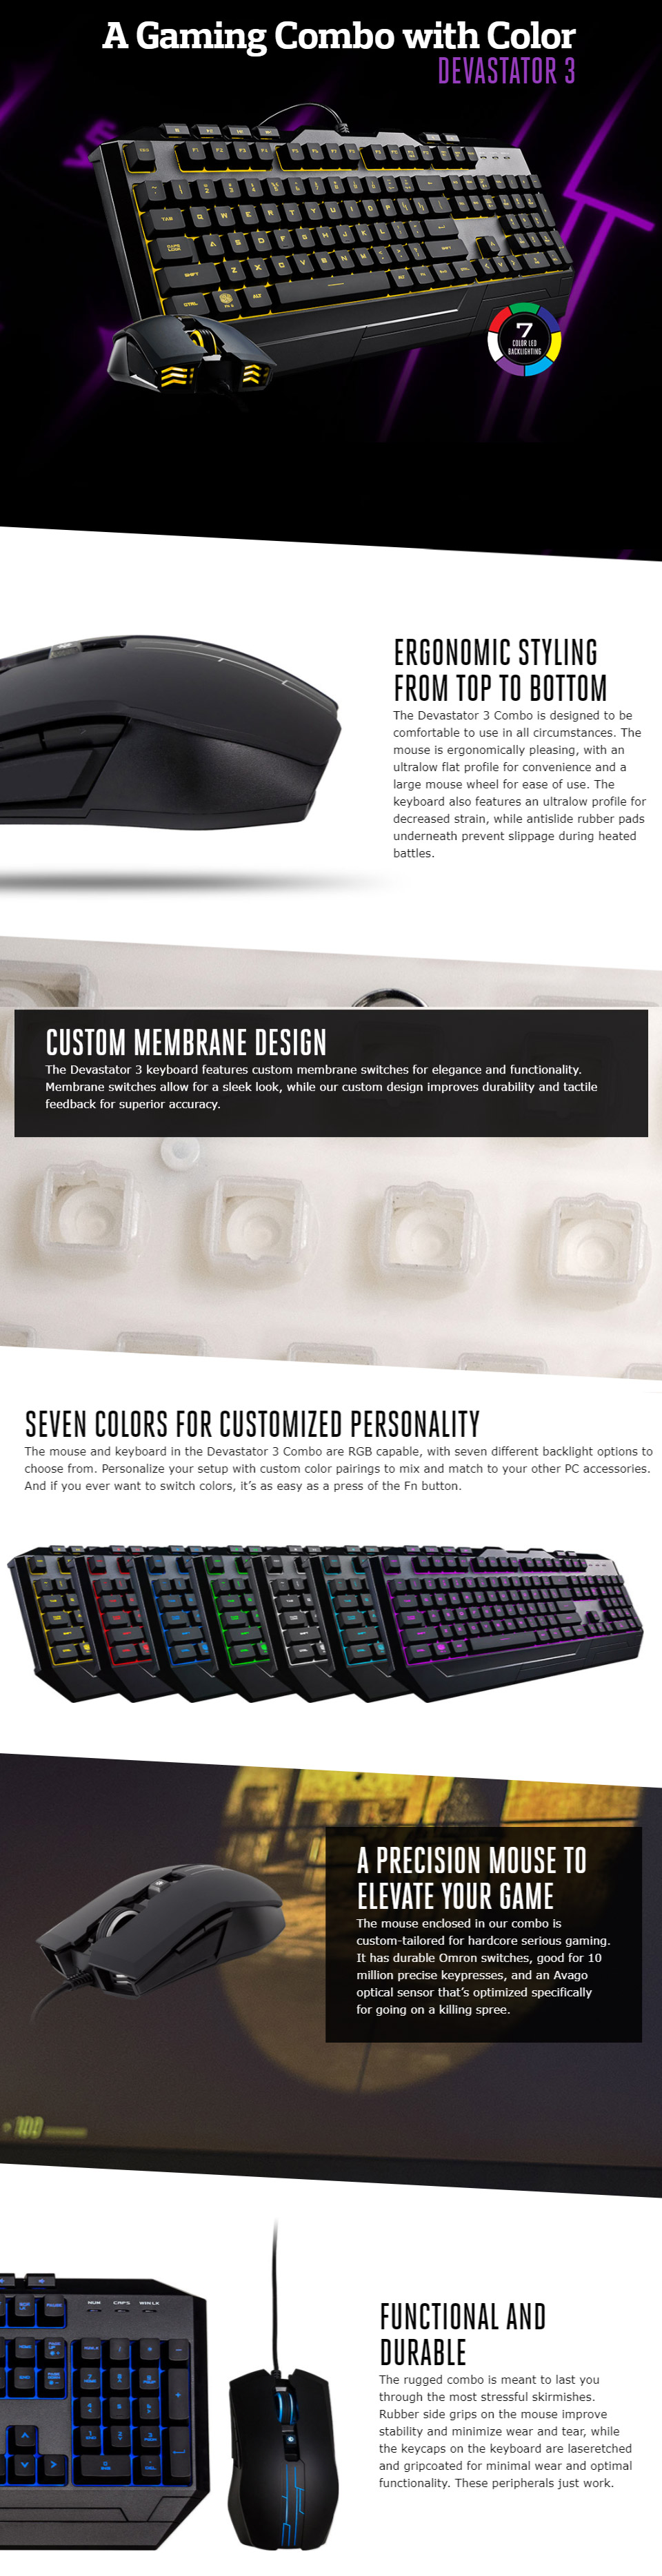 d3bab55c15f And now with 7 different LED colour options, you can customise your  peripherals to match your hardware.